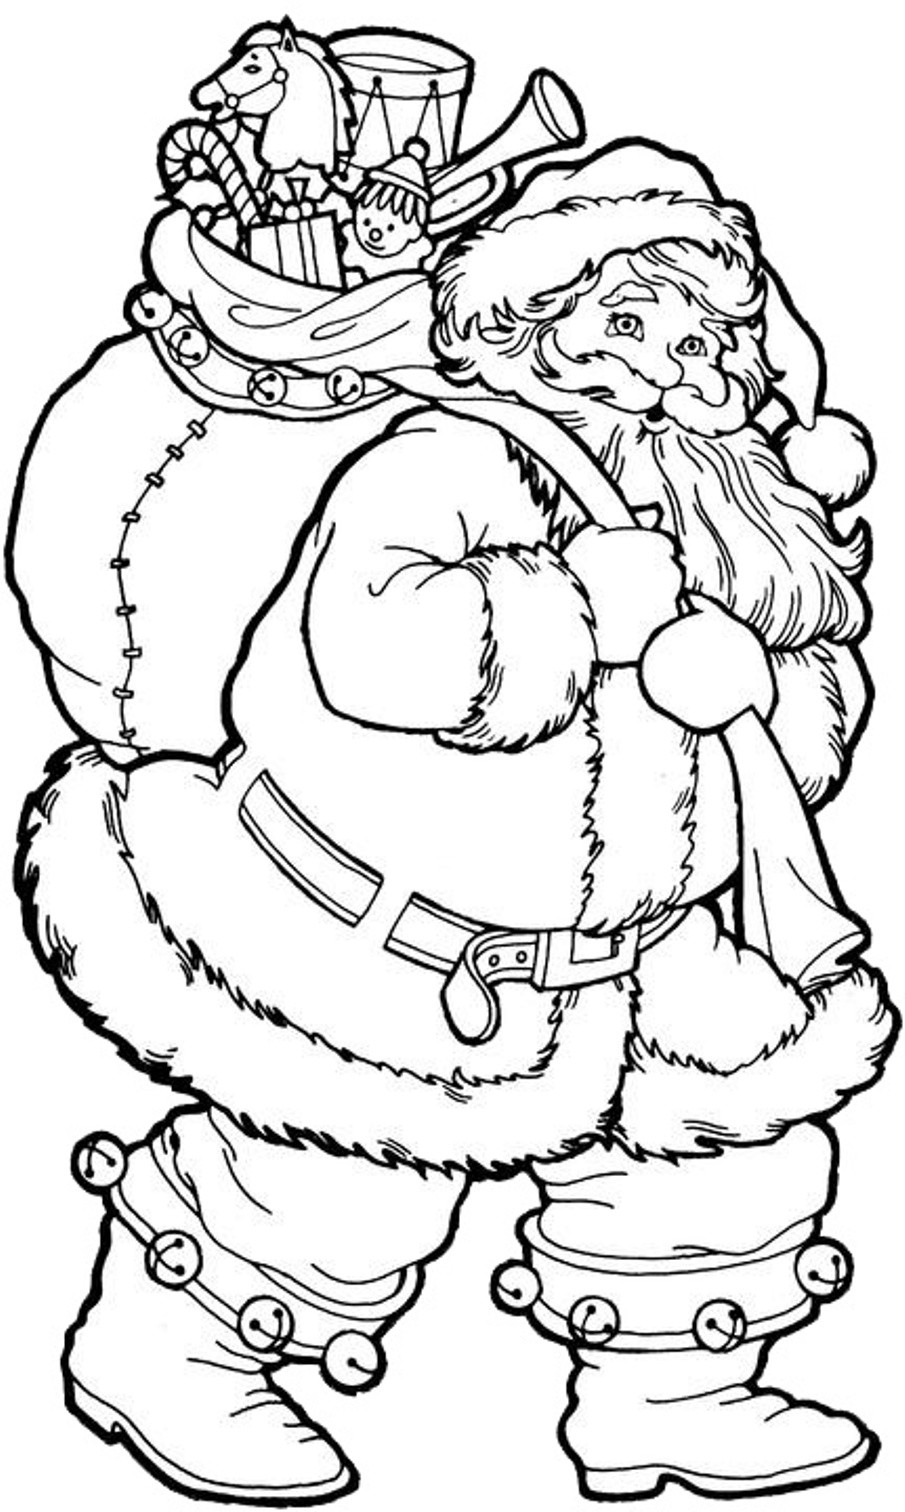 Santa Coloring Pages For Adults With Christmas Tree Xmas Best Of In Napisy Me